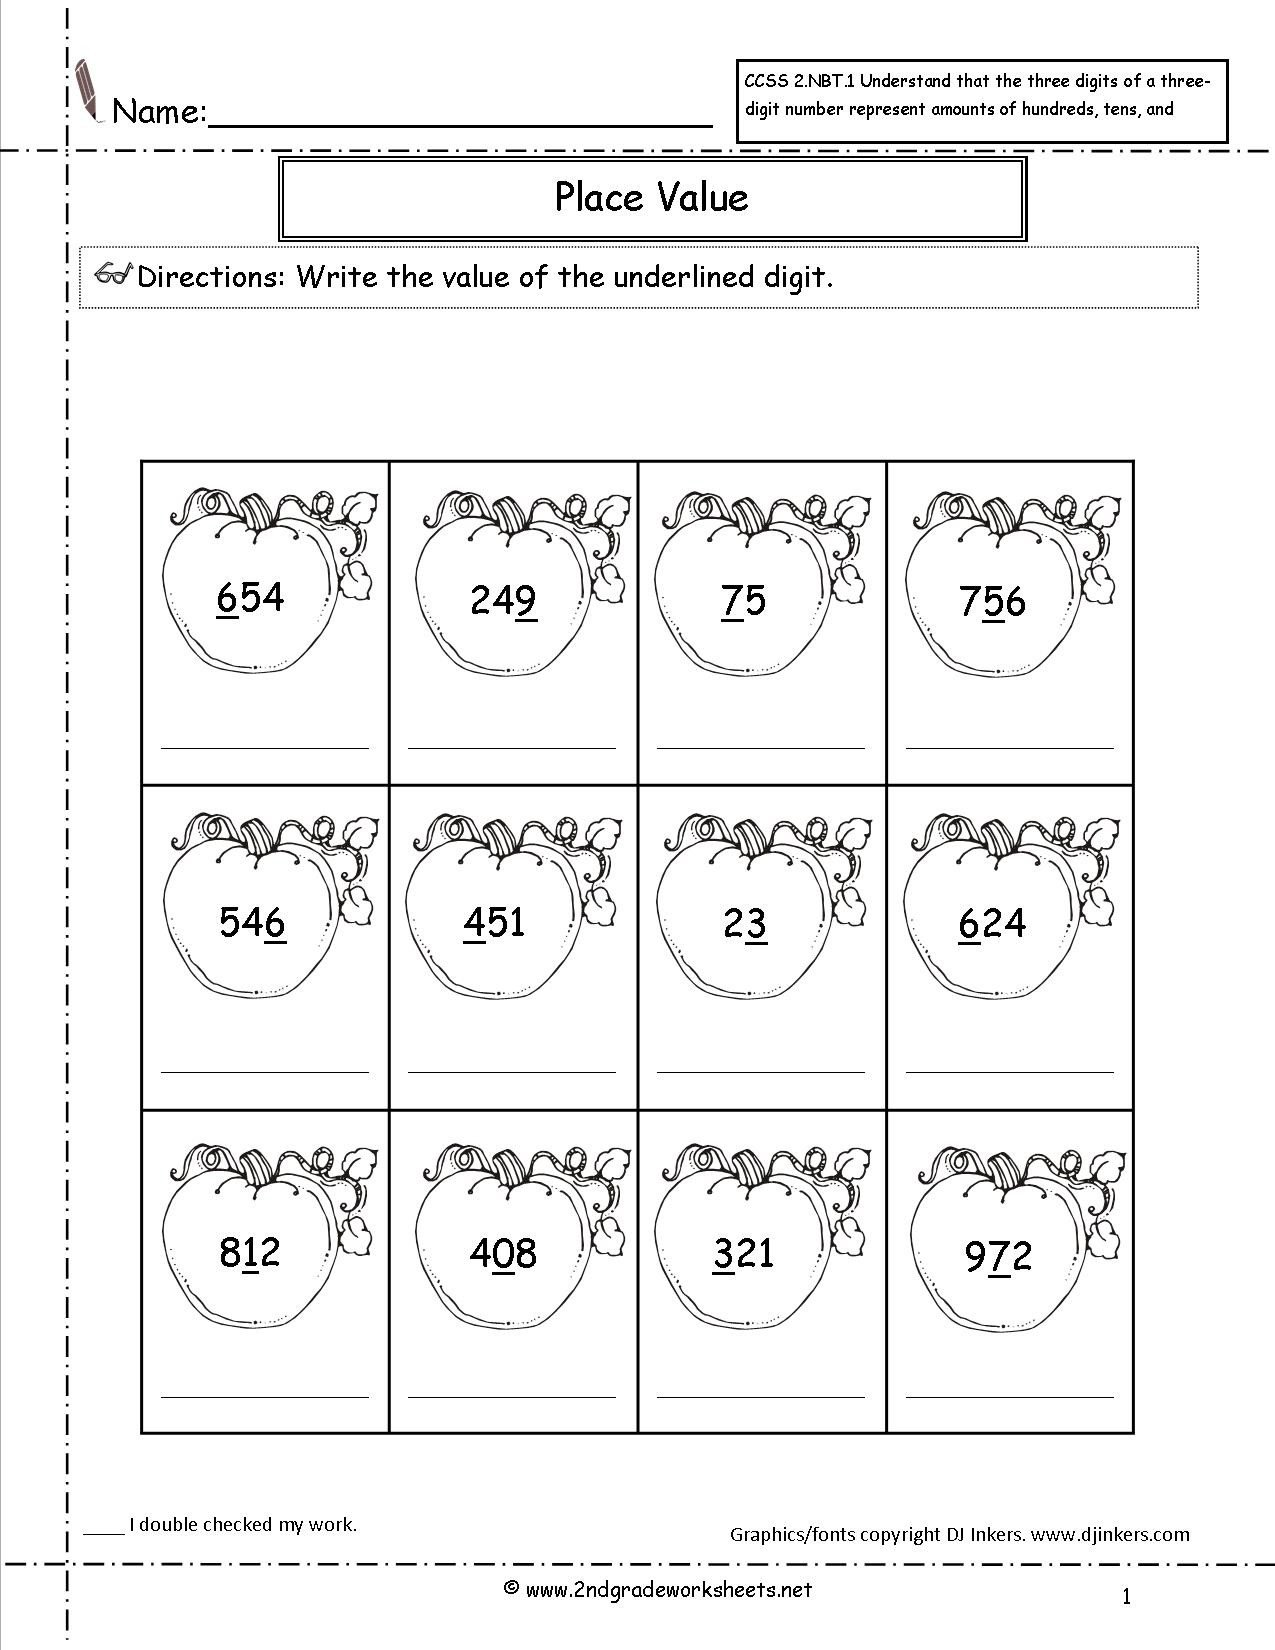 Sequence Worksheets 5th Grade Sequence events Worksheets Mr